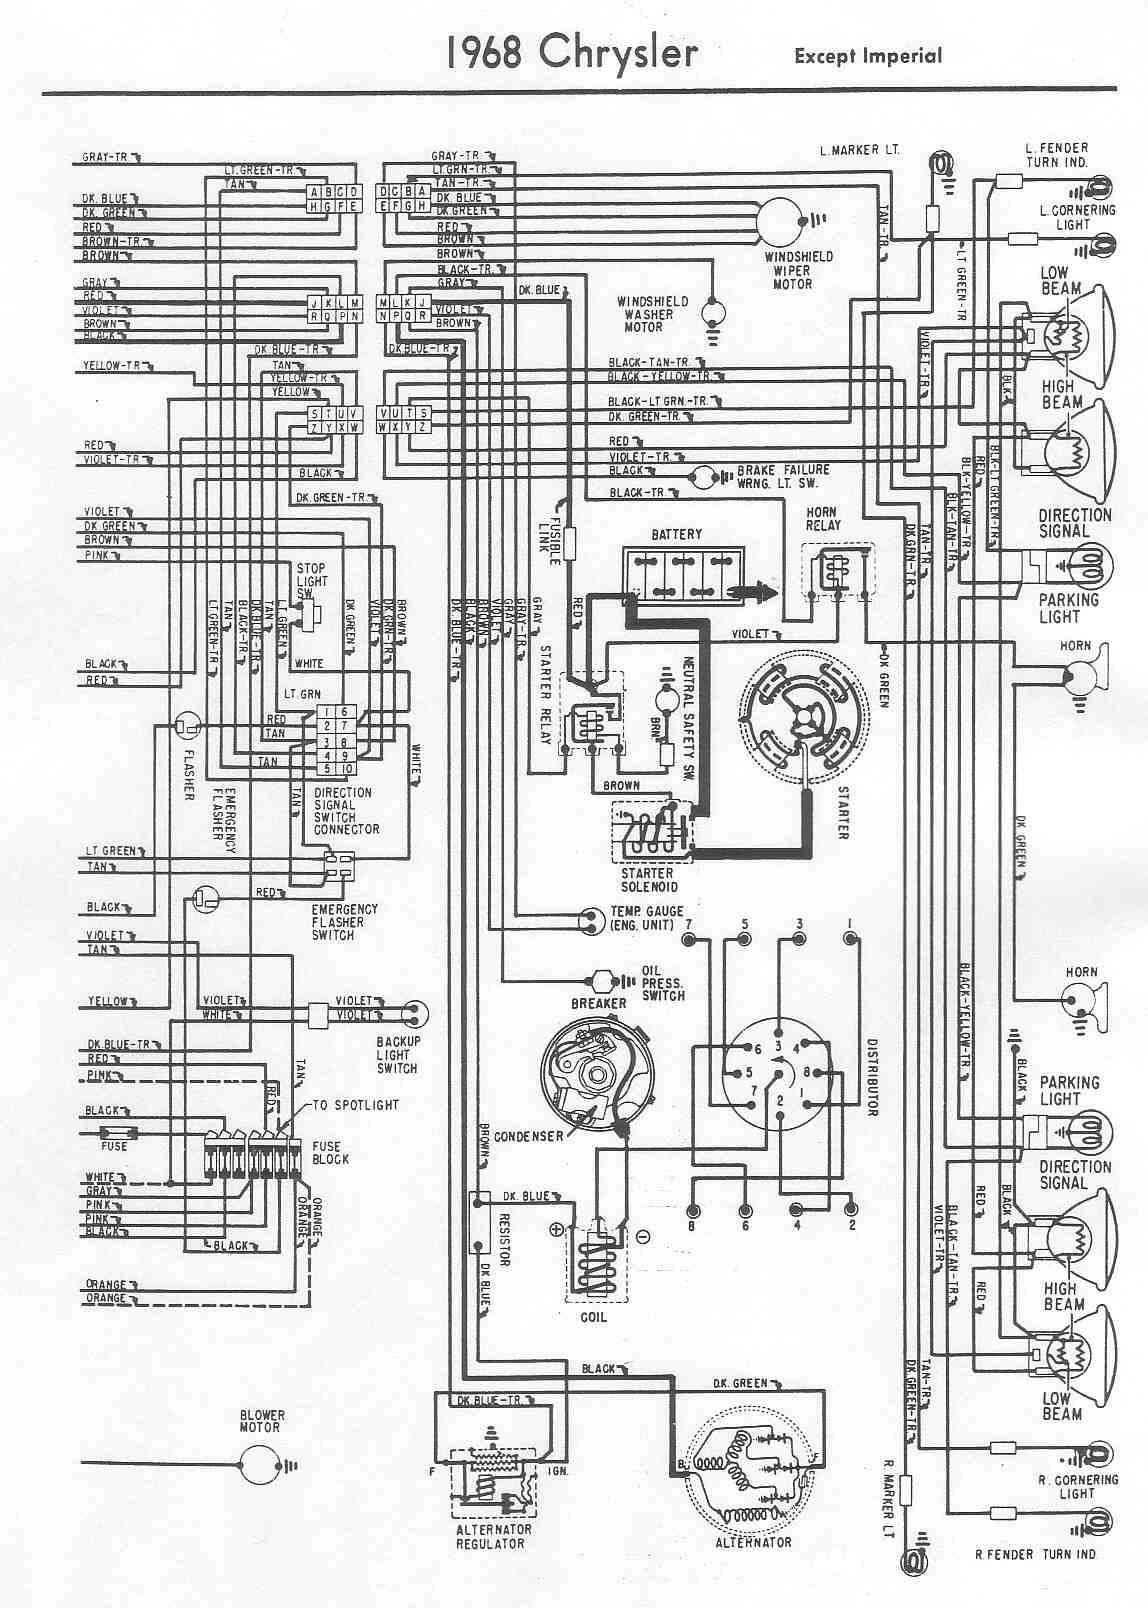 Chevy Battery Cables Wiring Moreover 72 Truck Diagram Headlight In Addition 1972 C10 On 68